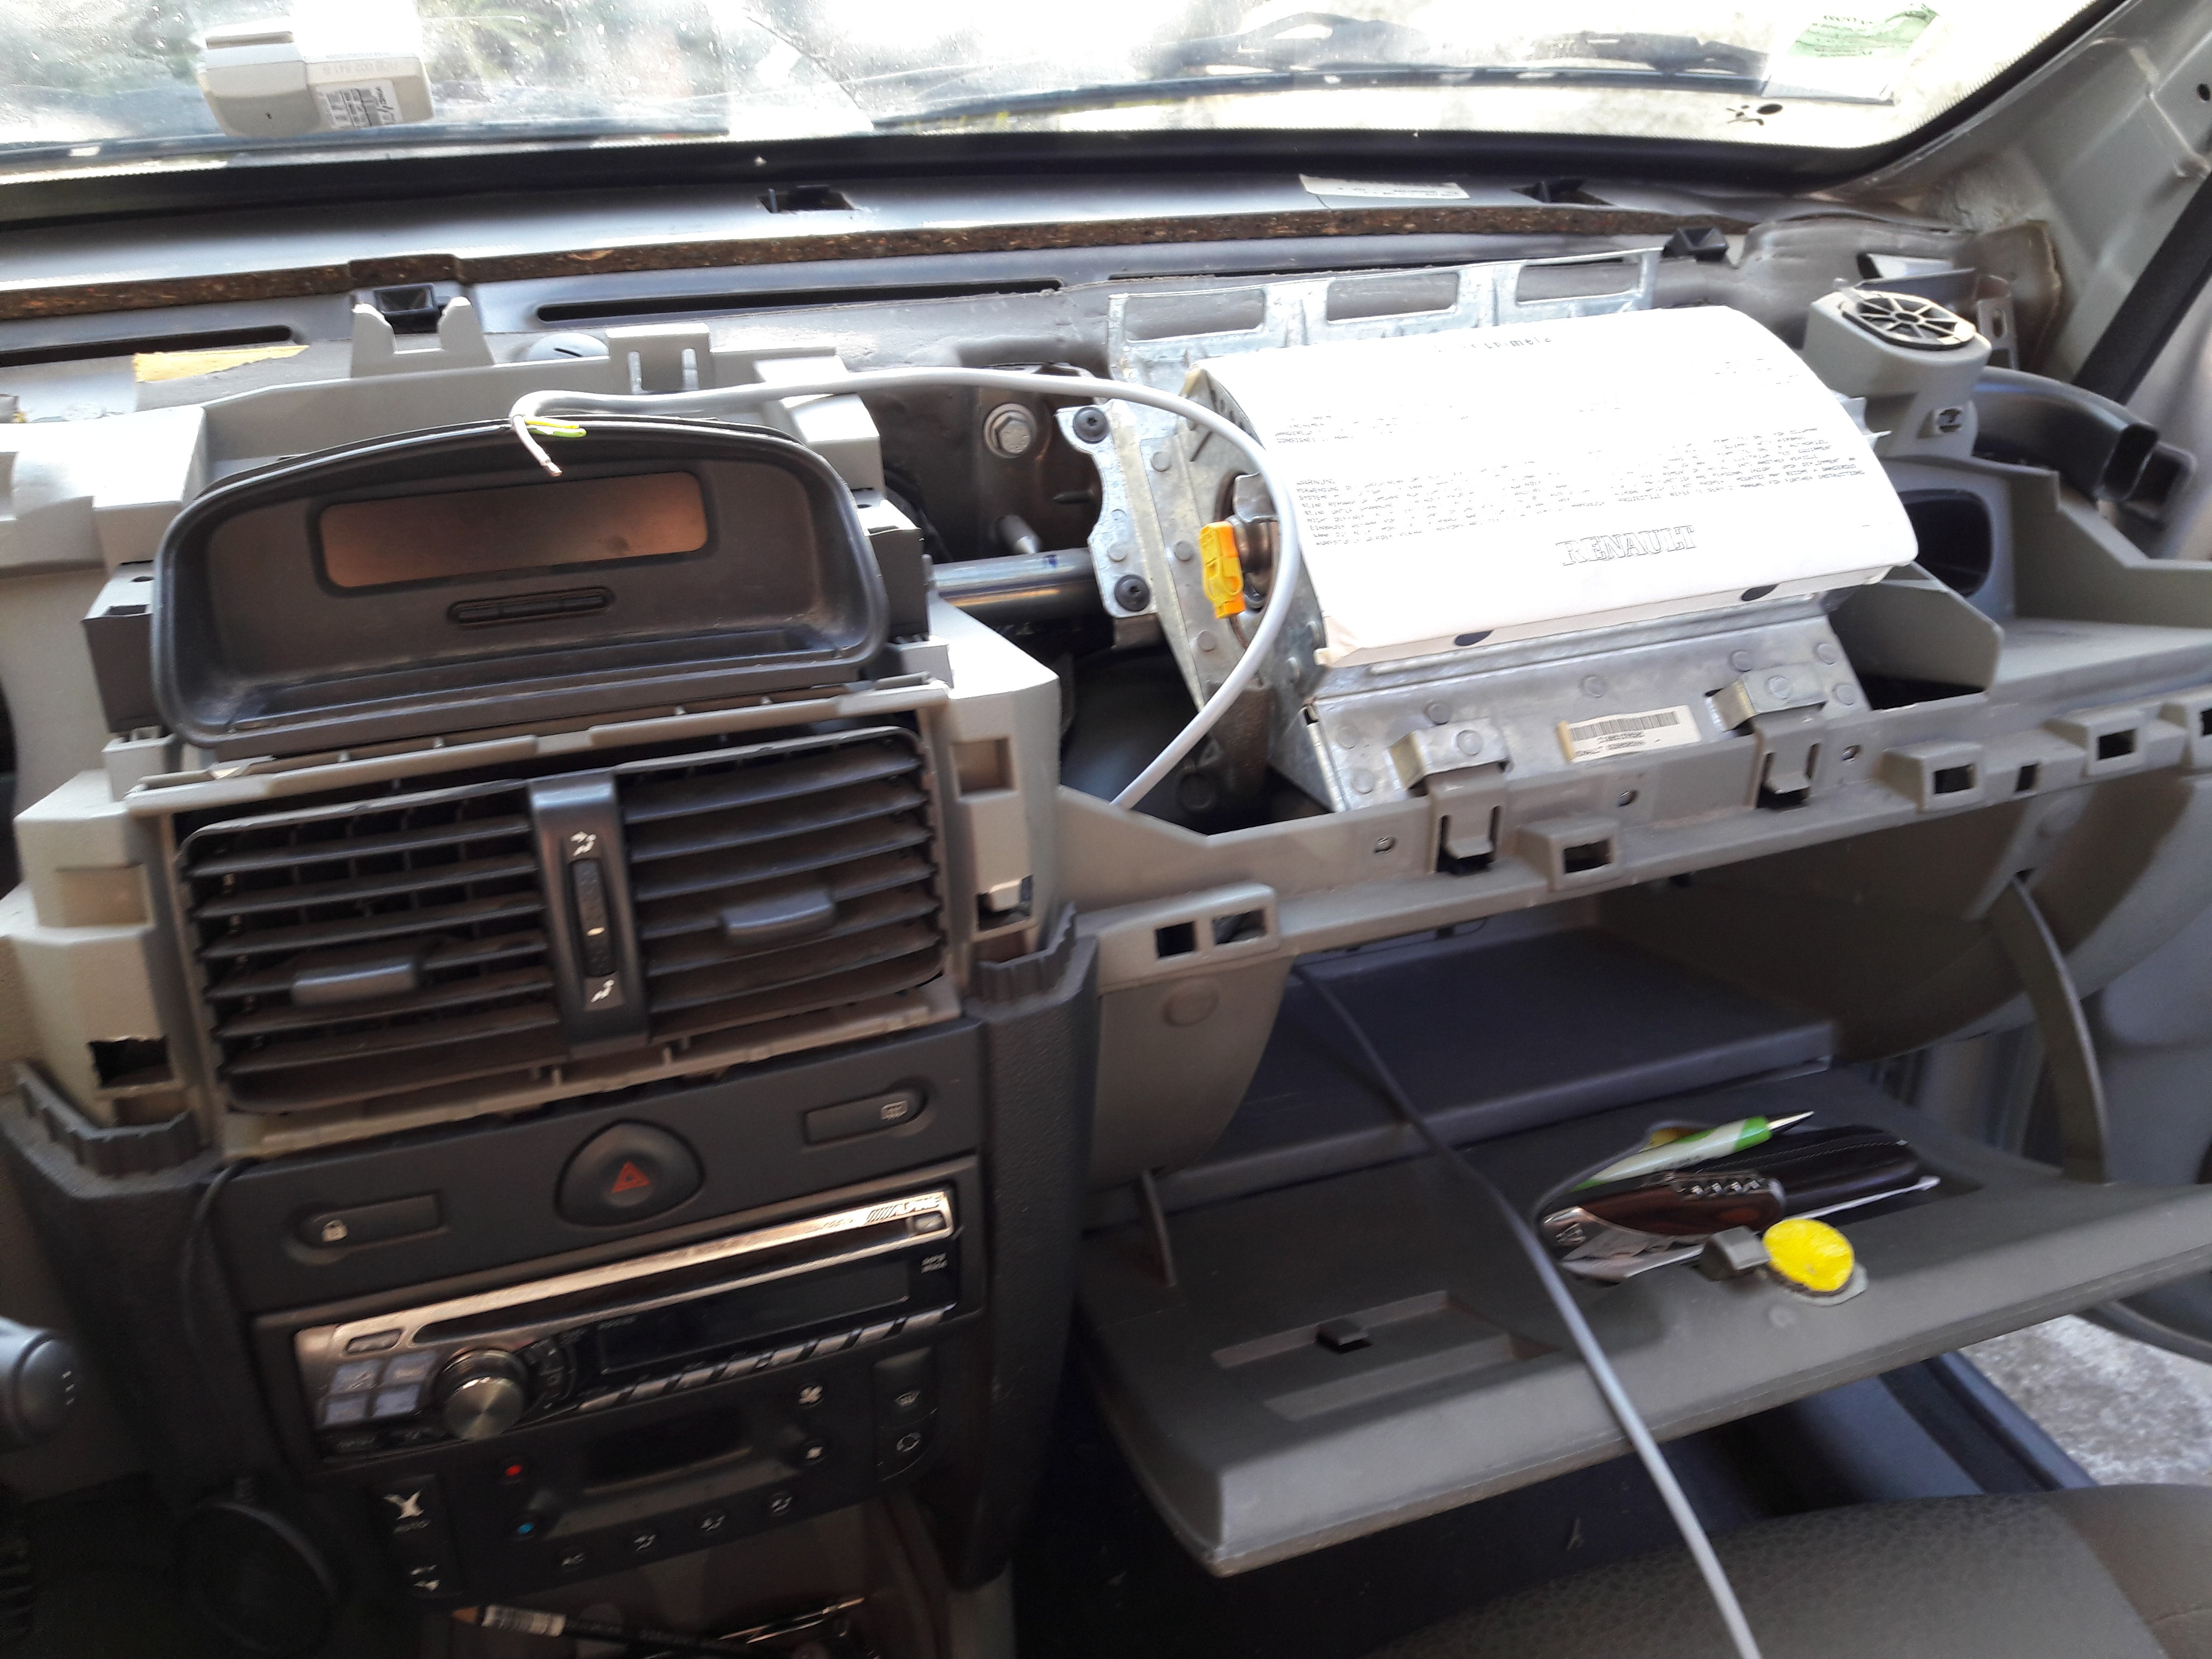 Project Smart Car Radio Renault Scenic Fuse Box Glove The Arduino Board With Canbus Interface And Bluetooth Spp Module Will Be In A Case